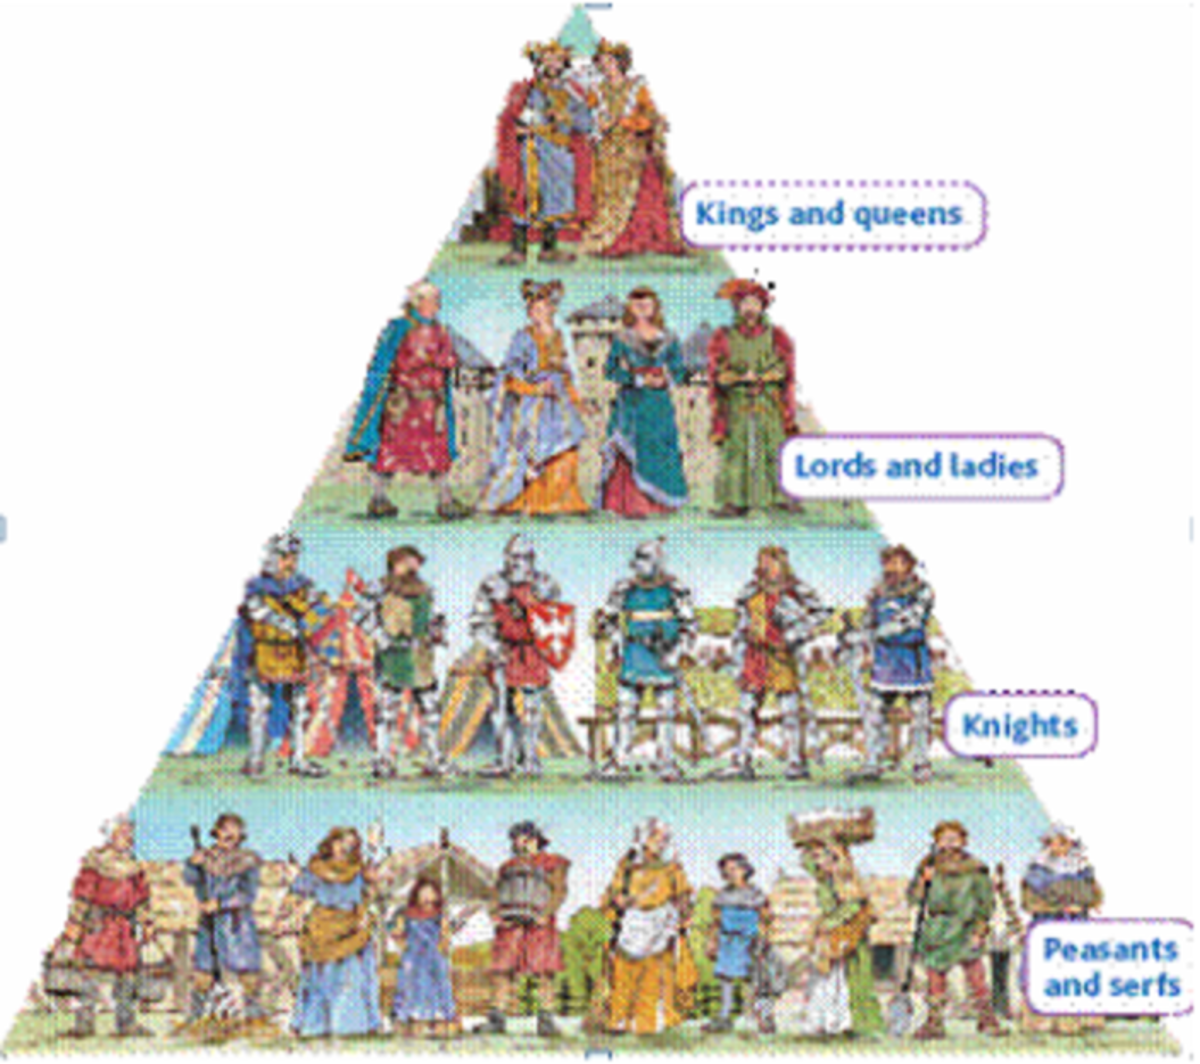 Class structure of a monarchical/feudal society that is close to industrial capitalism